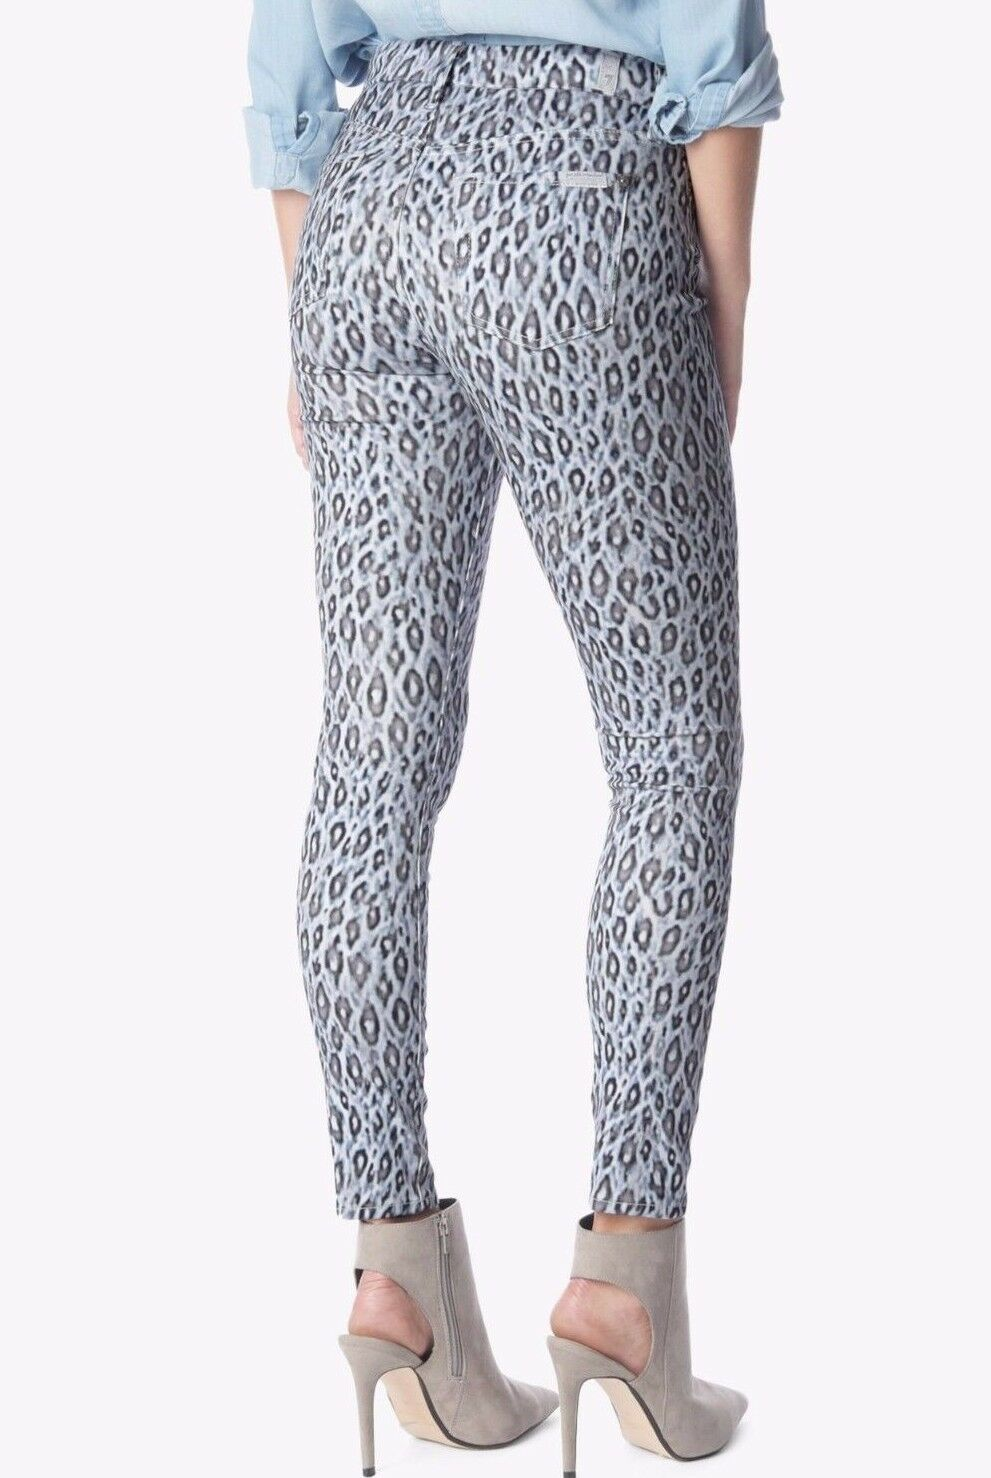 198 NWT 7 FOR ALL MANKIND Sz28 MIDRISE ANKLE SKINNY STRETCH JEANS ICE LEOPARD